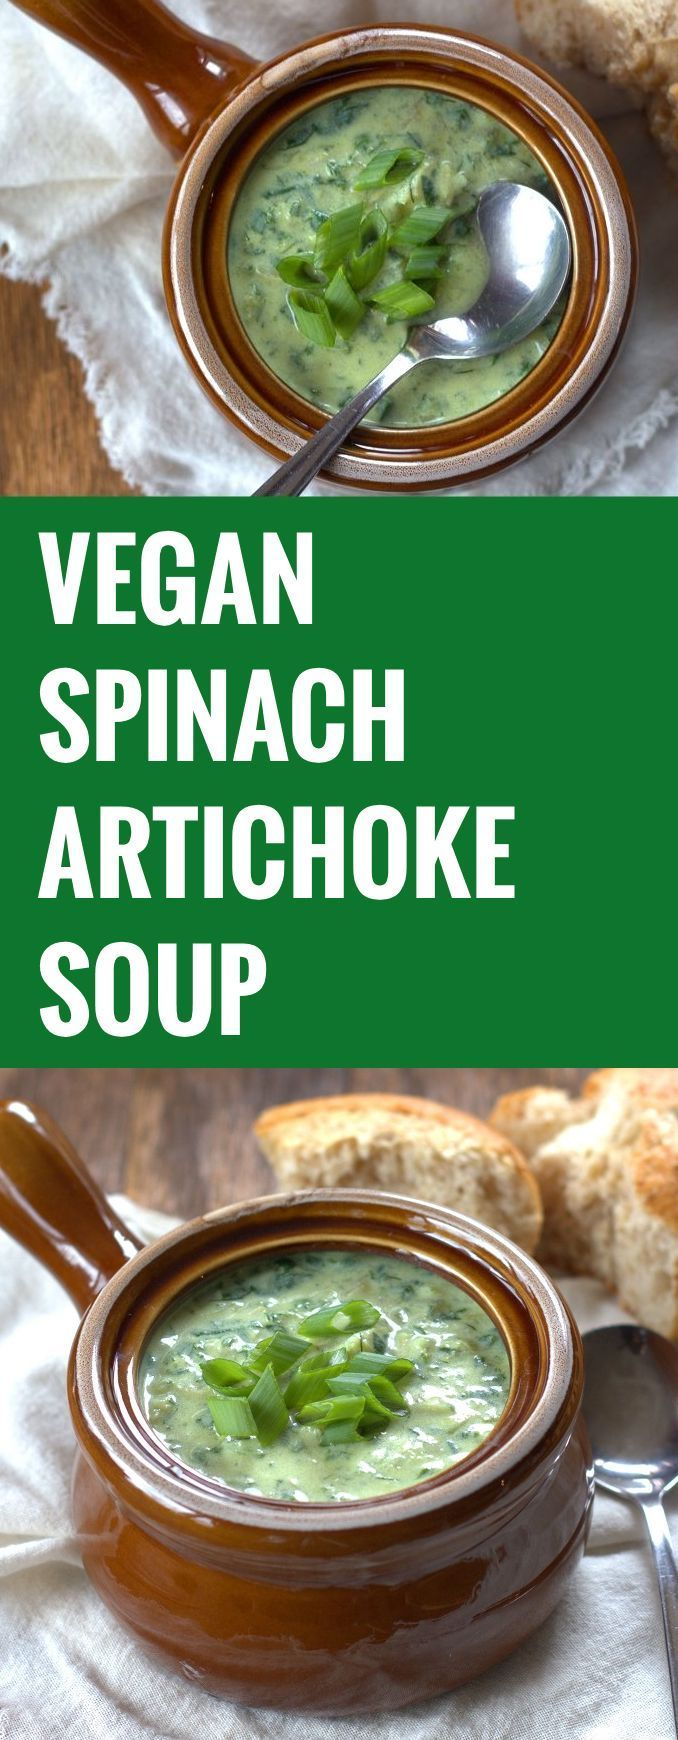 This Vegan Spinach and Artichoke Soup will convert any non-vegan. Did I mention I love soup?! #vegan #soup